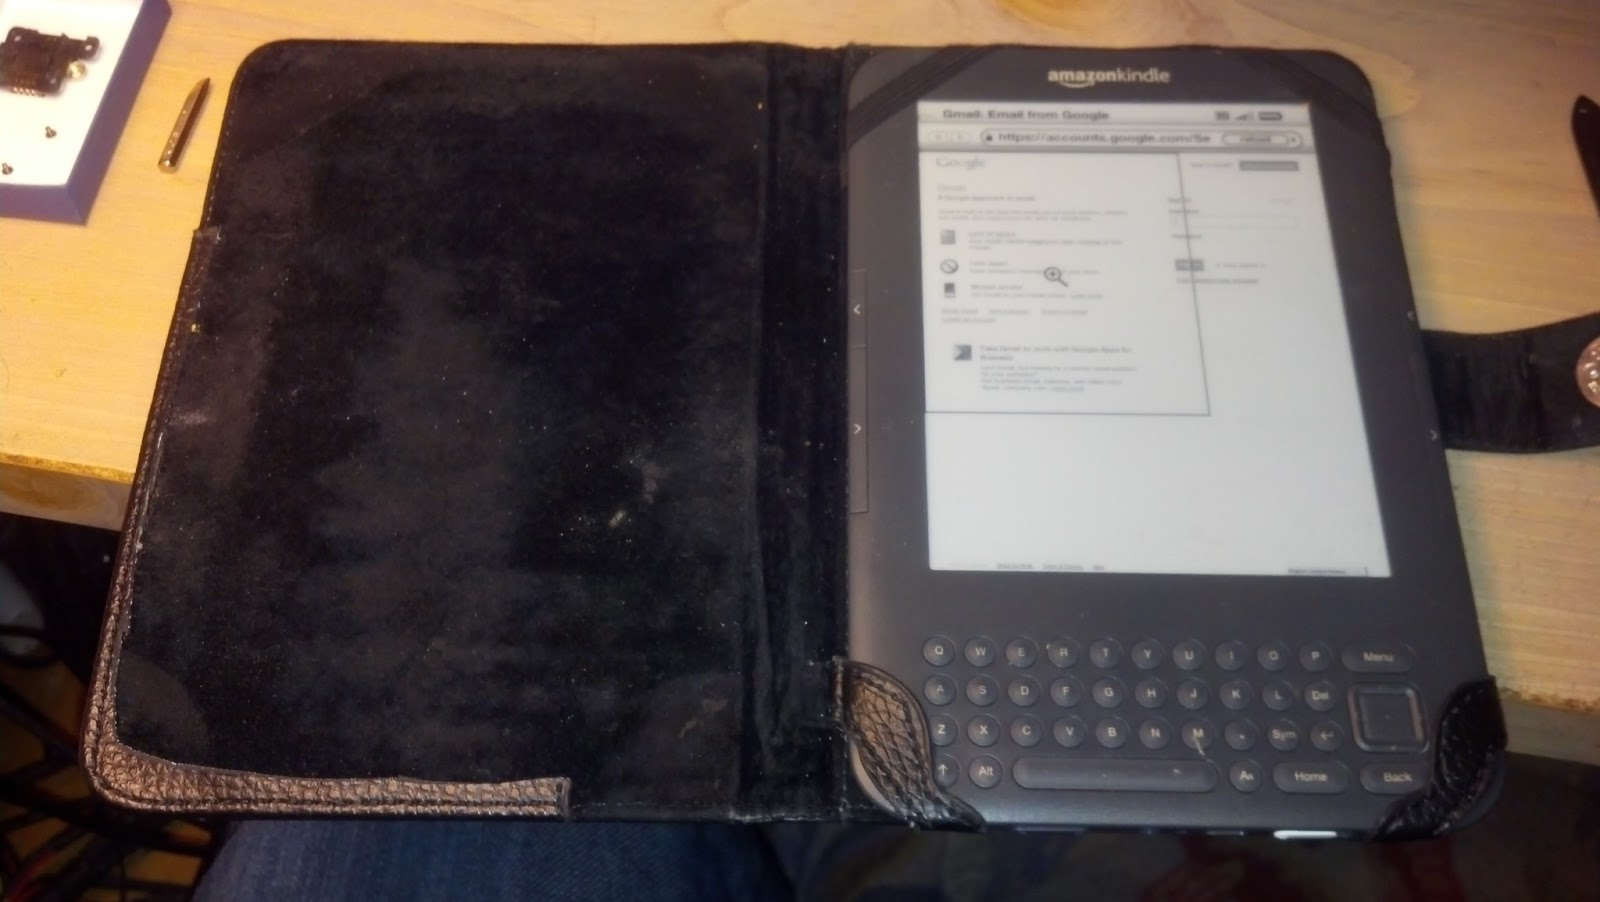 Siliconfish: Repaired Kindle 3 Keyboard 3G that was freezing